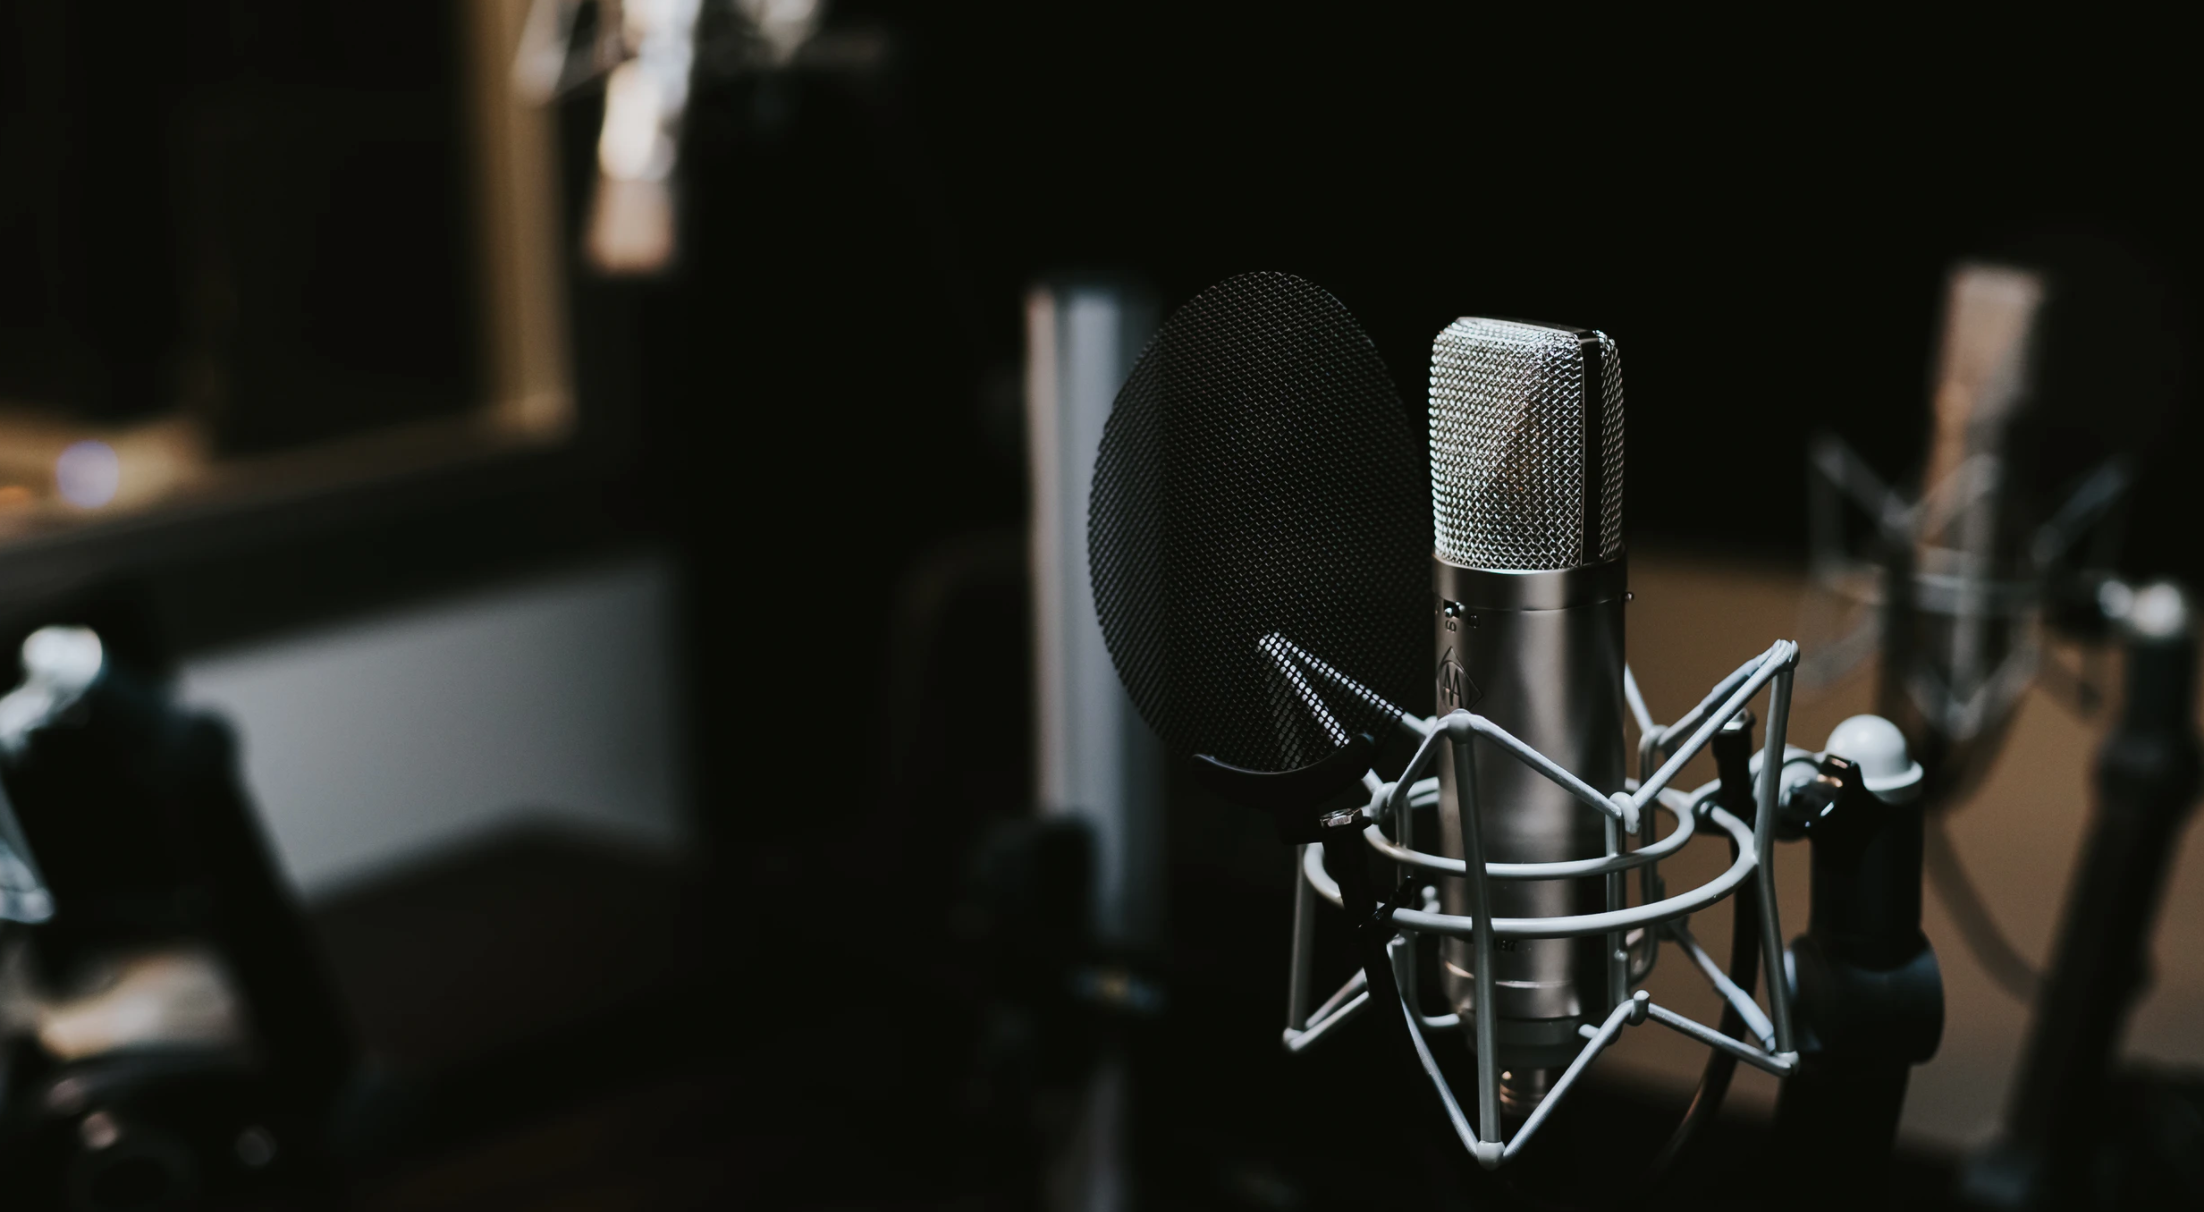 Things to think about when recording a VO